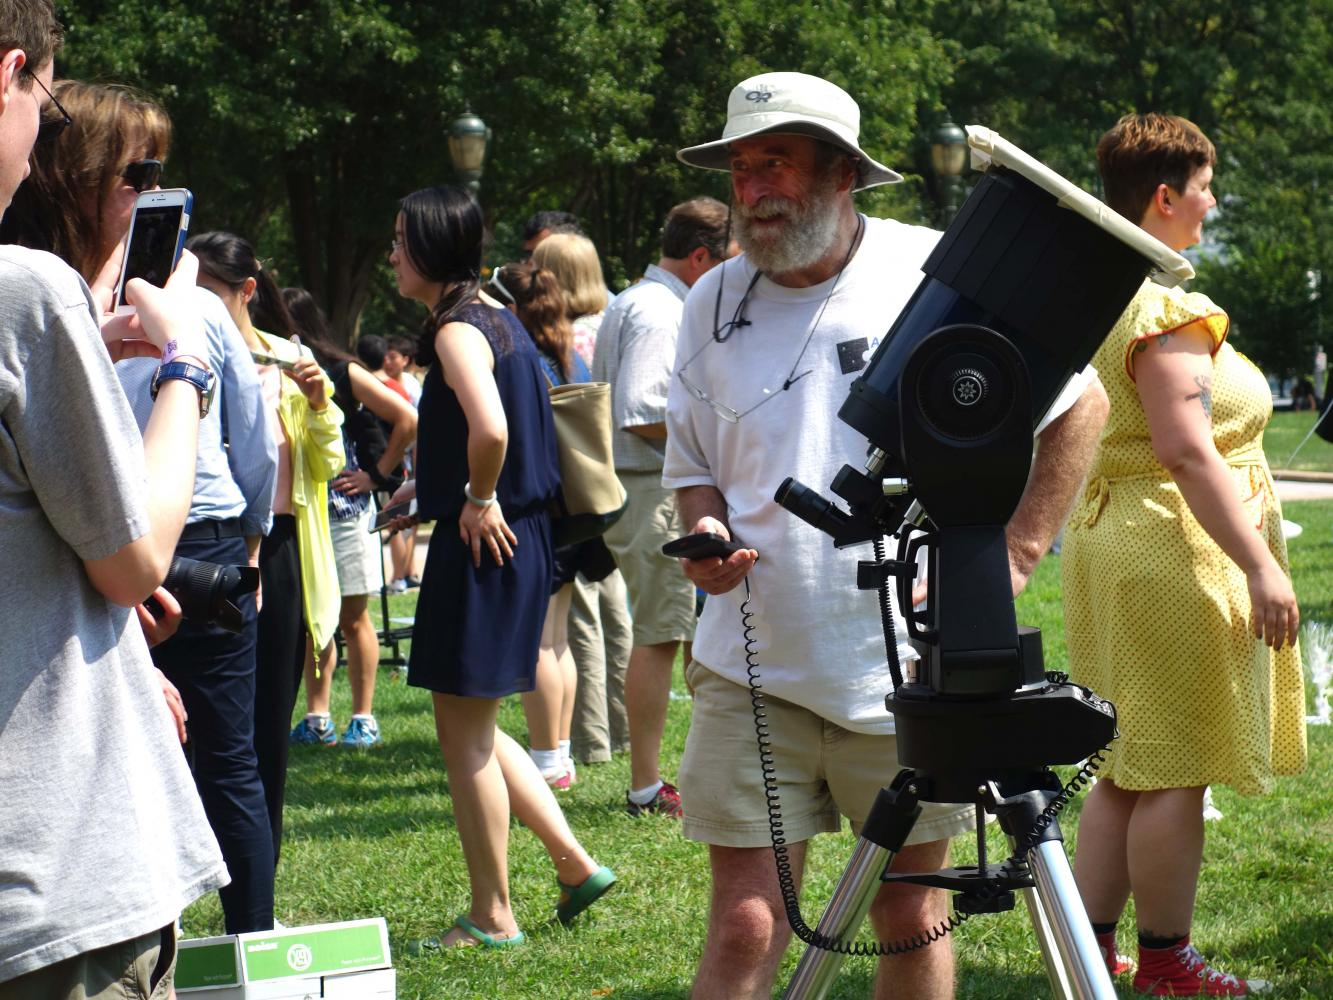 Many viewed the eclipse from the Warner and Swasey Observatory or the Kent Hale Smith Oval.